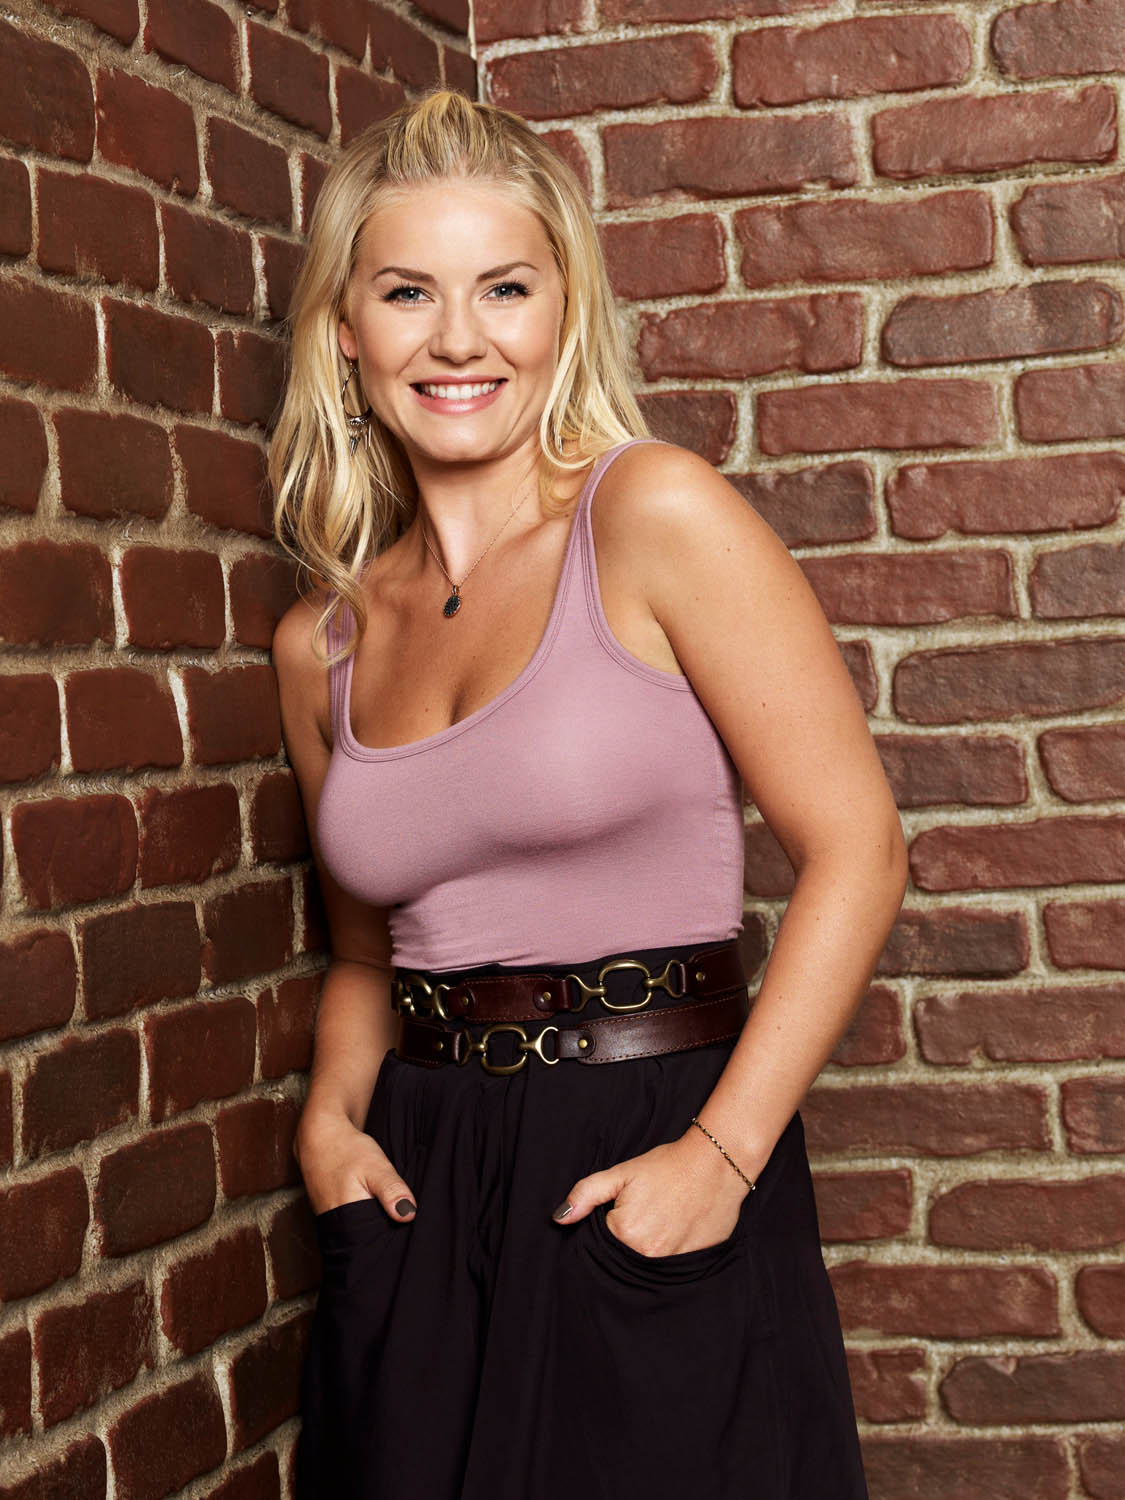 Elisha Cuthbert Latest Photos: Elisha Cuthbert Poses For The Happy Endings Promo In A